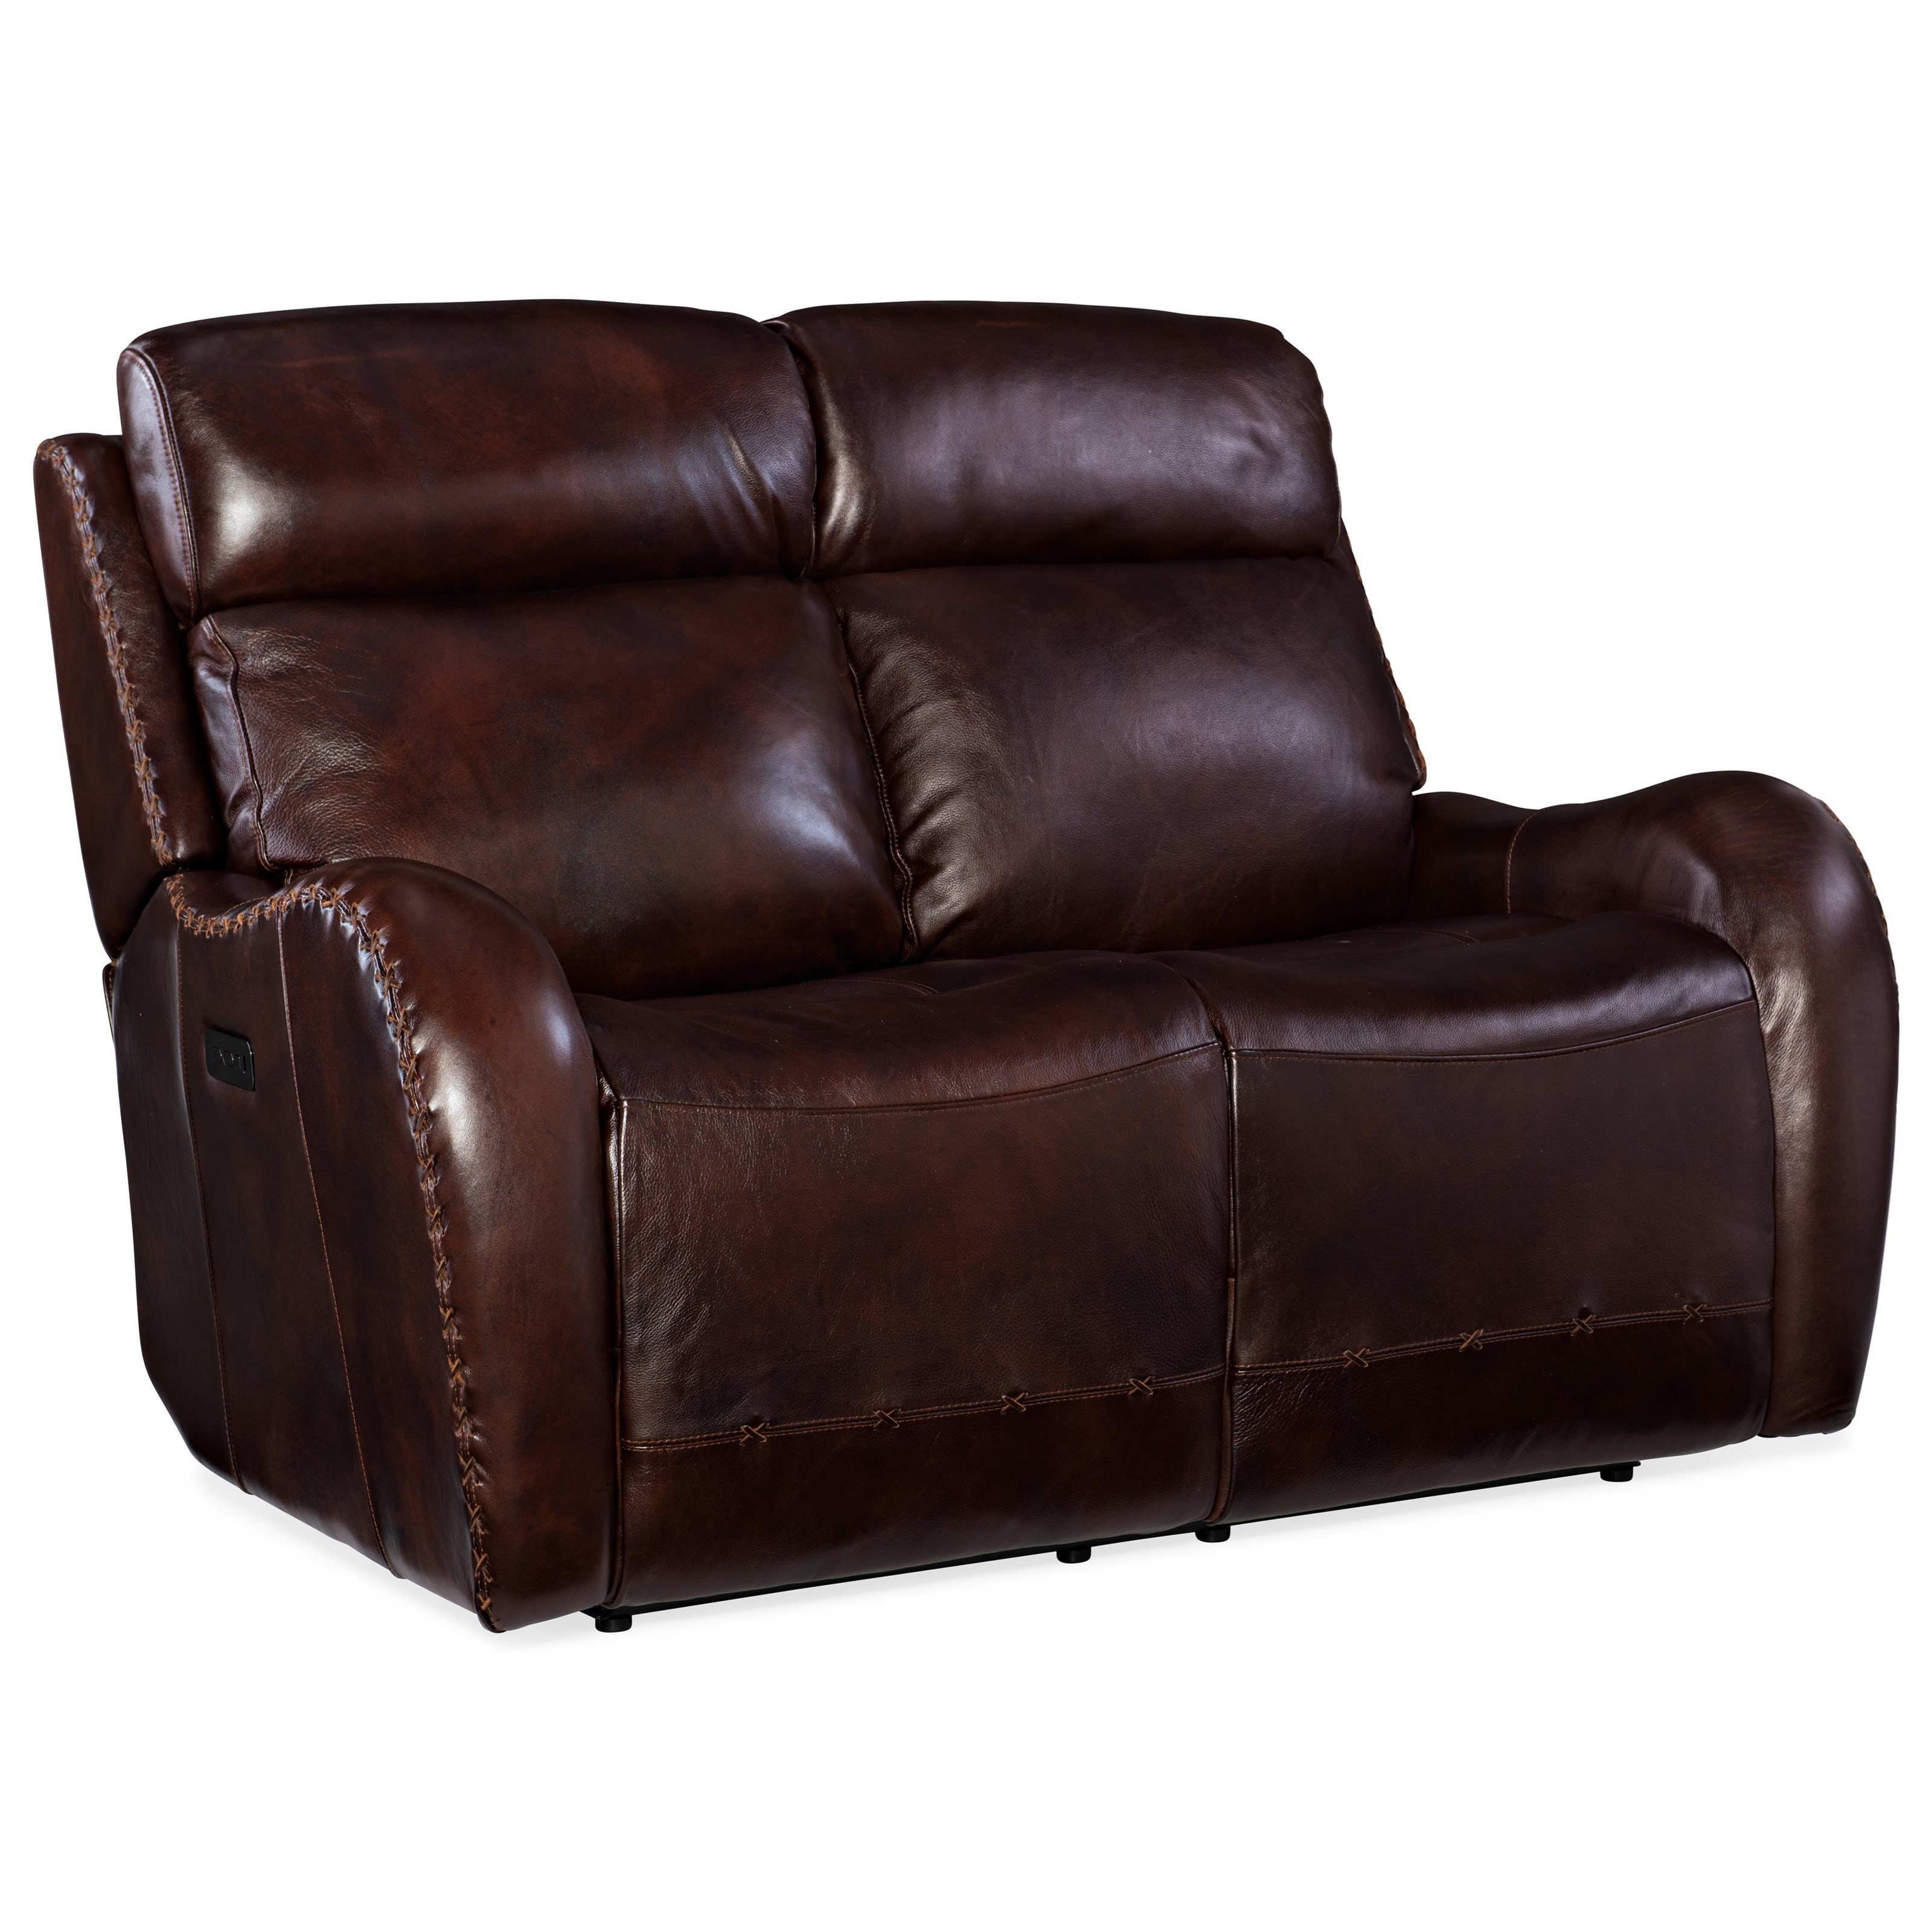 Chambers Power Reclining Loveseat by Hooker Furniture at Baer's Furniture